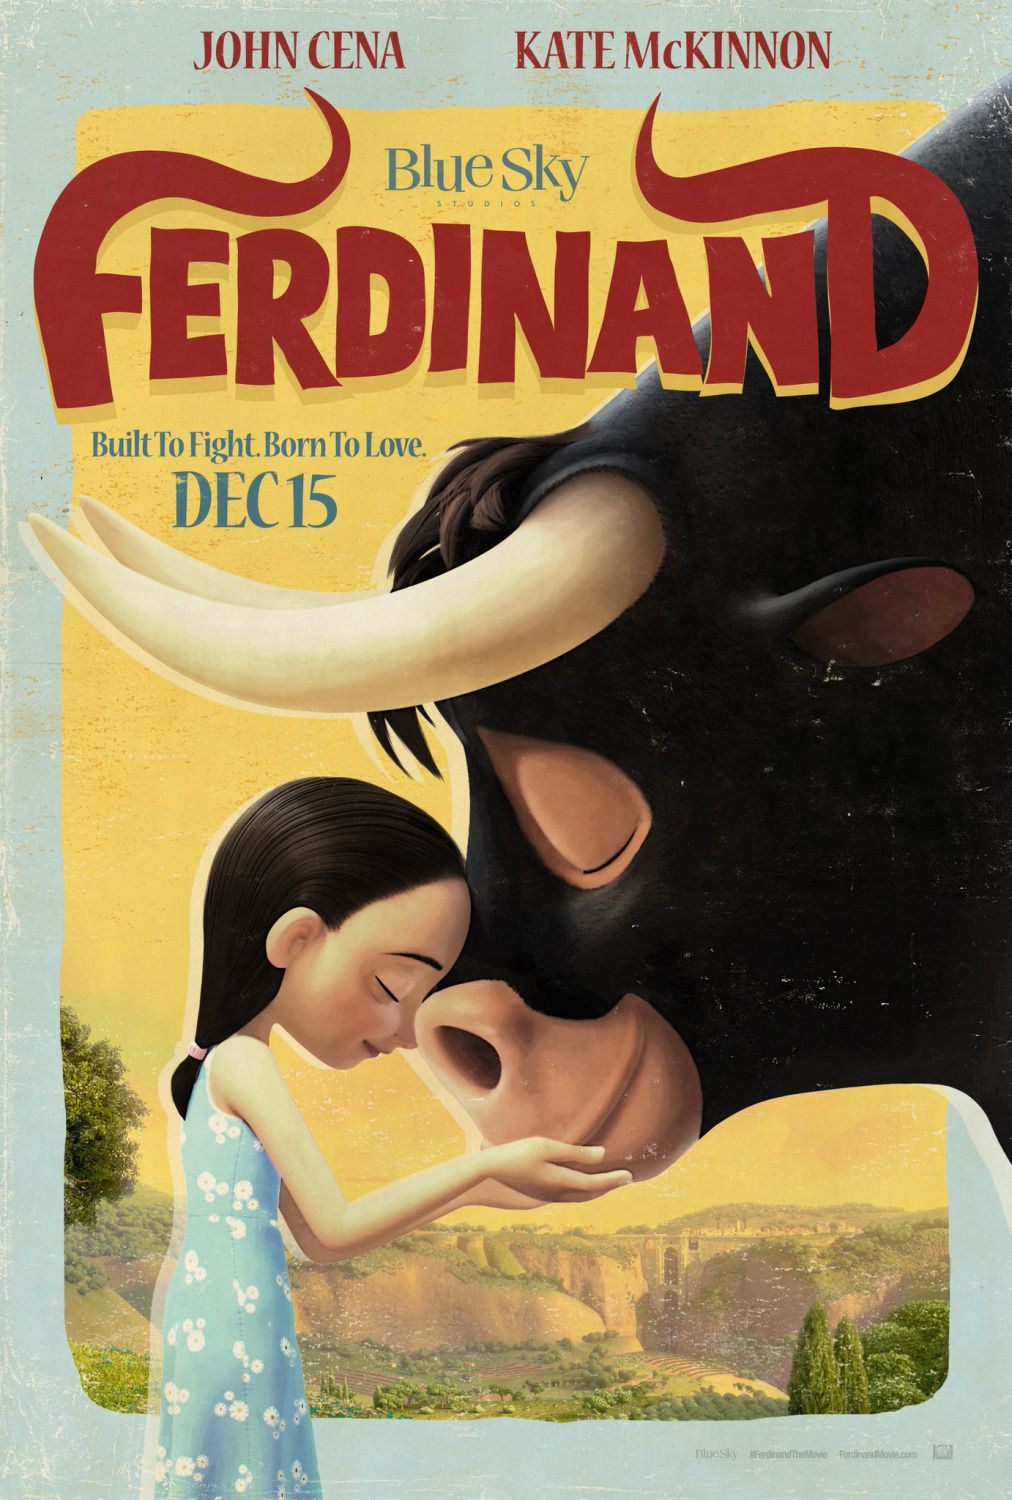 Ferdinand - animated movie poster